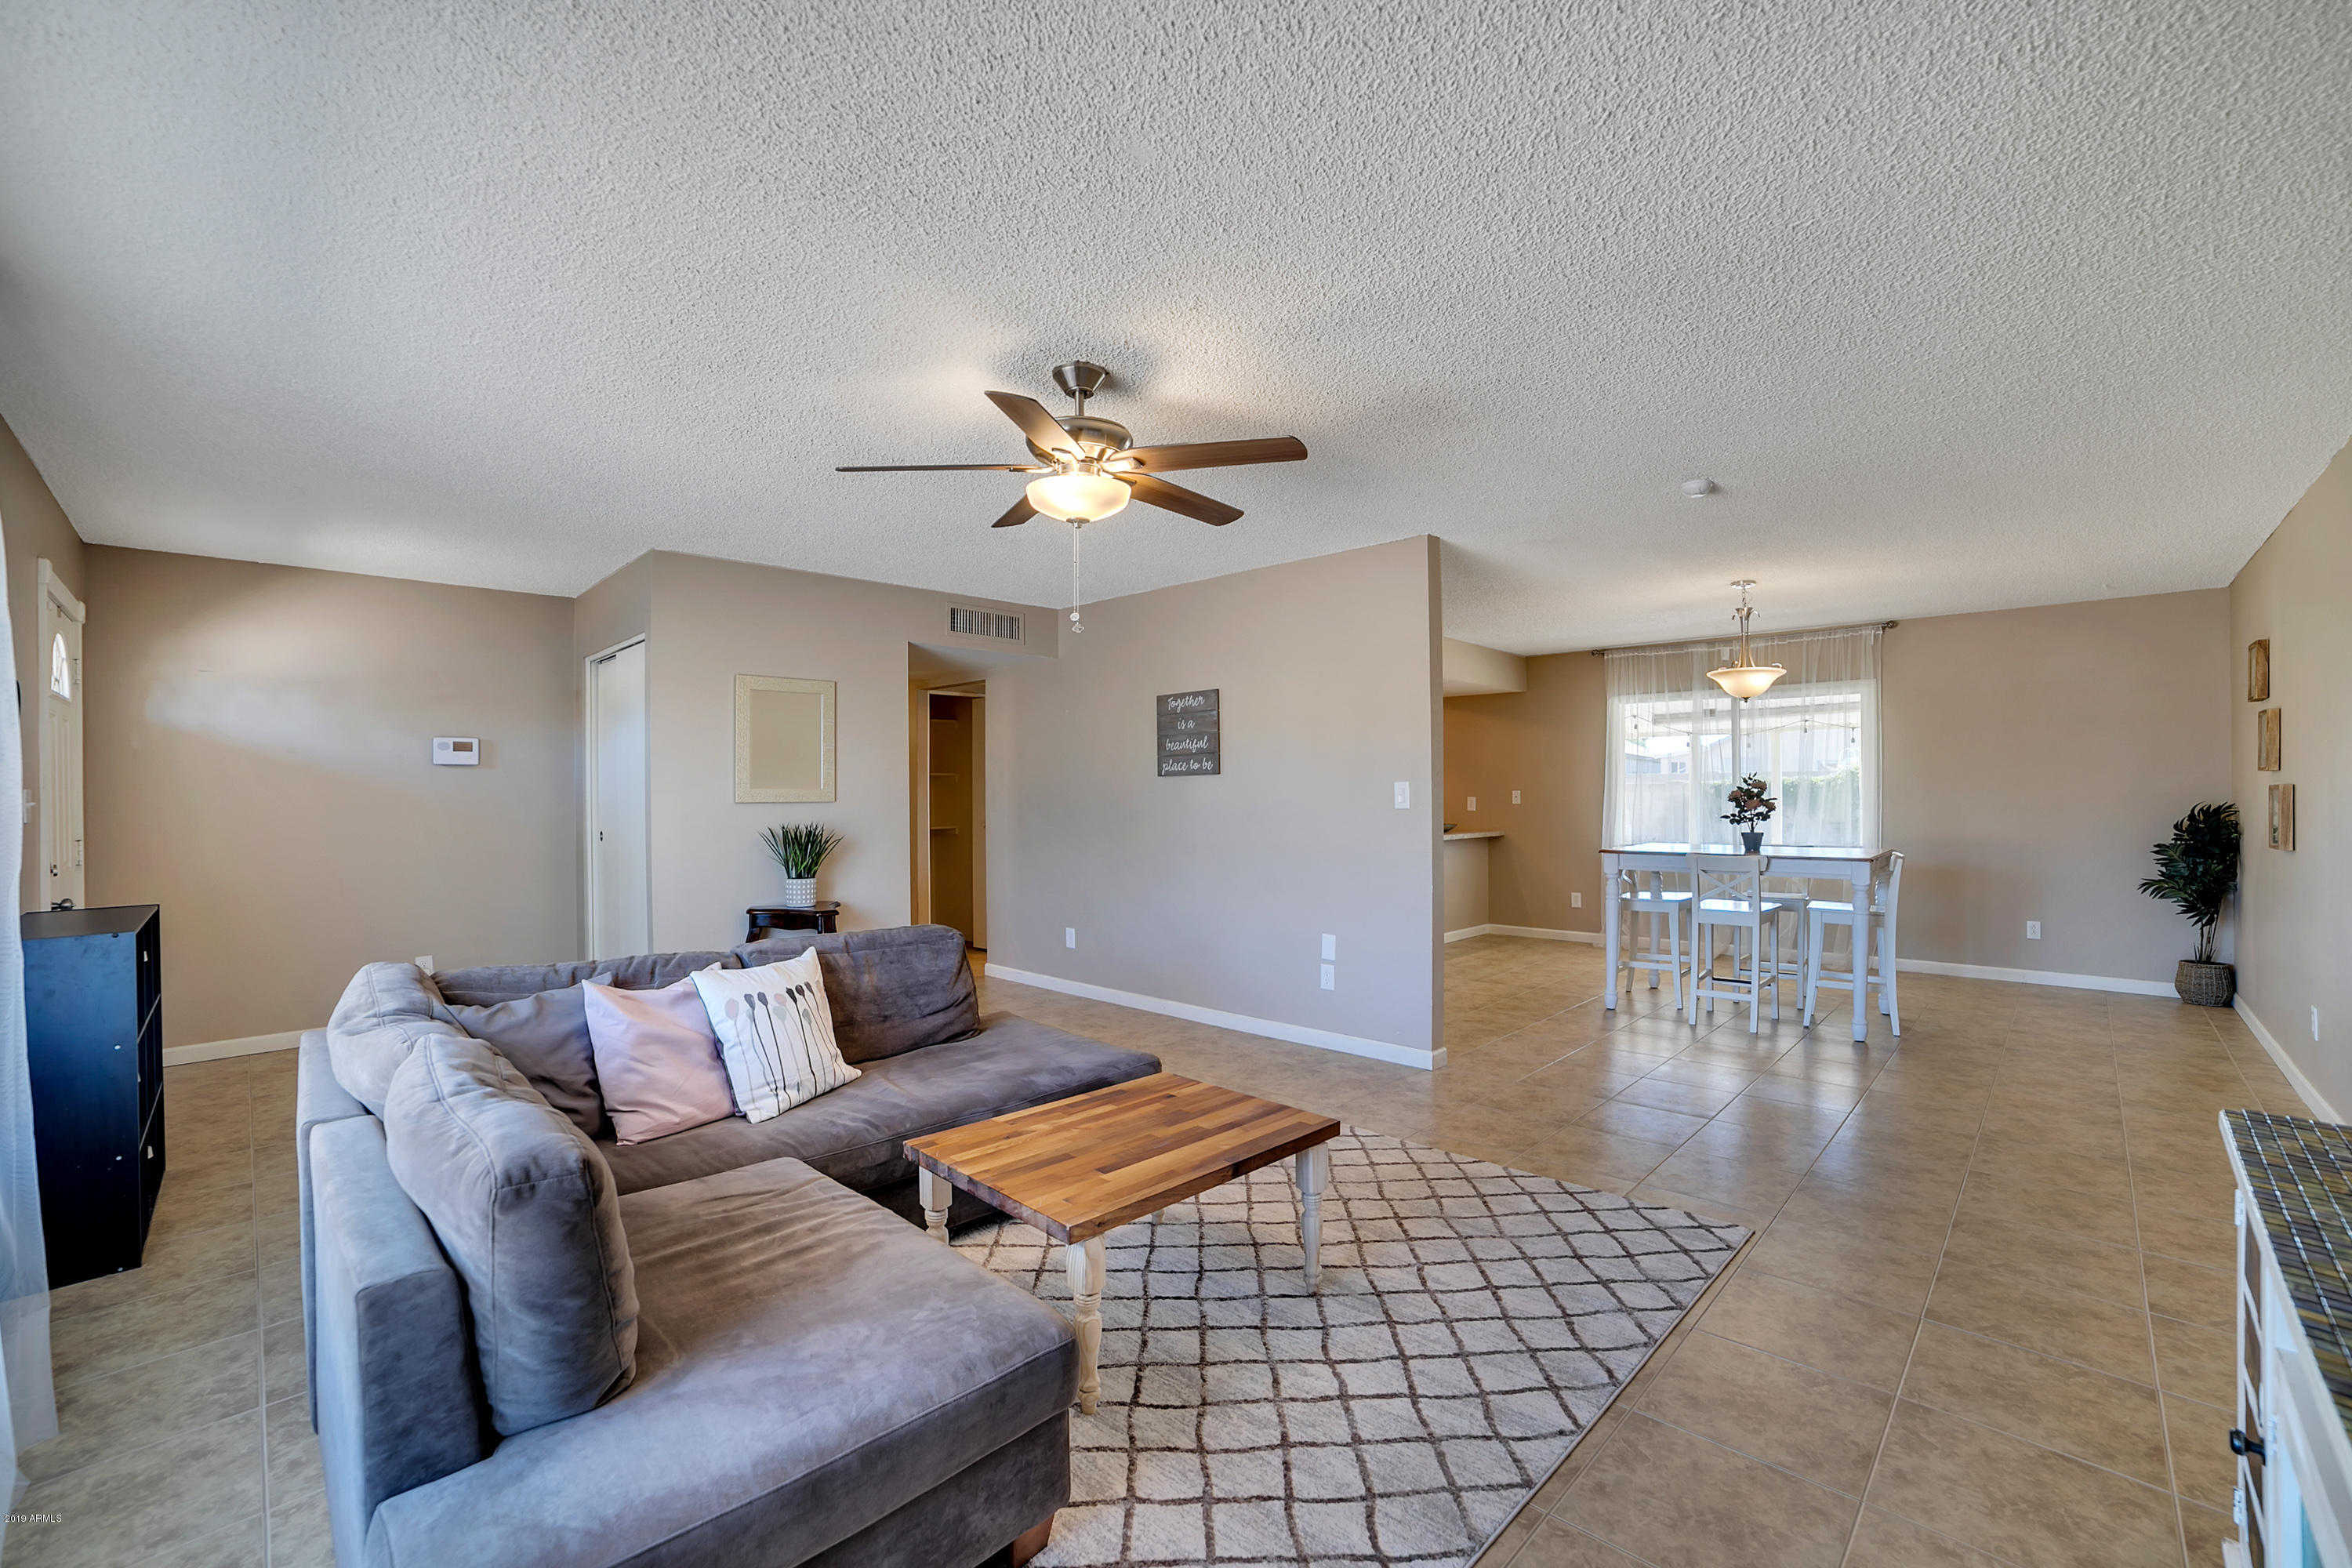 $200,000 - 2Br/2Ba - Home for Sale in West Plaza 23, Phoenix